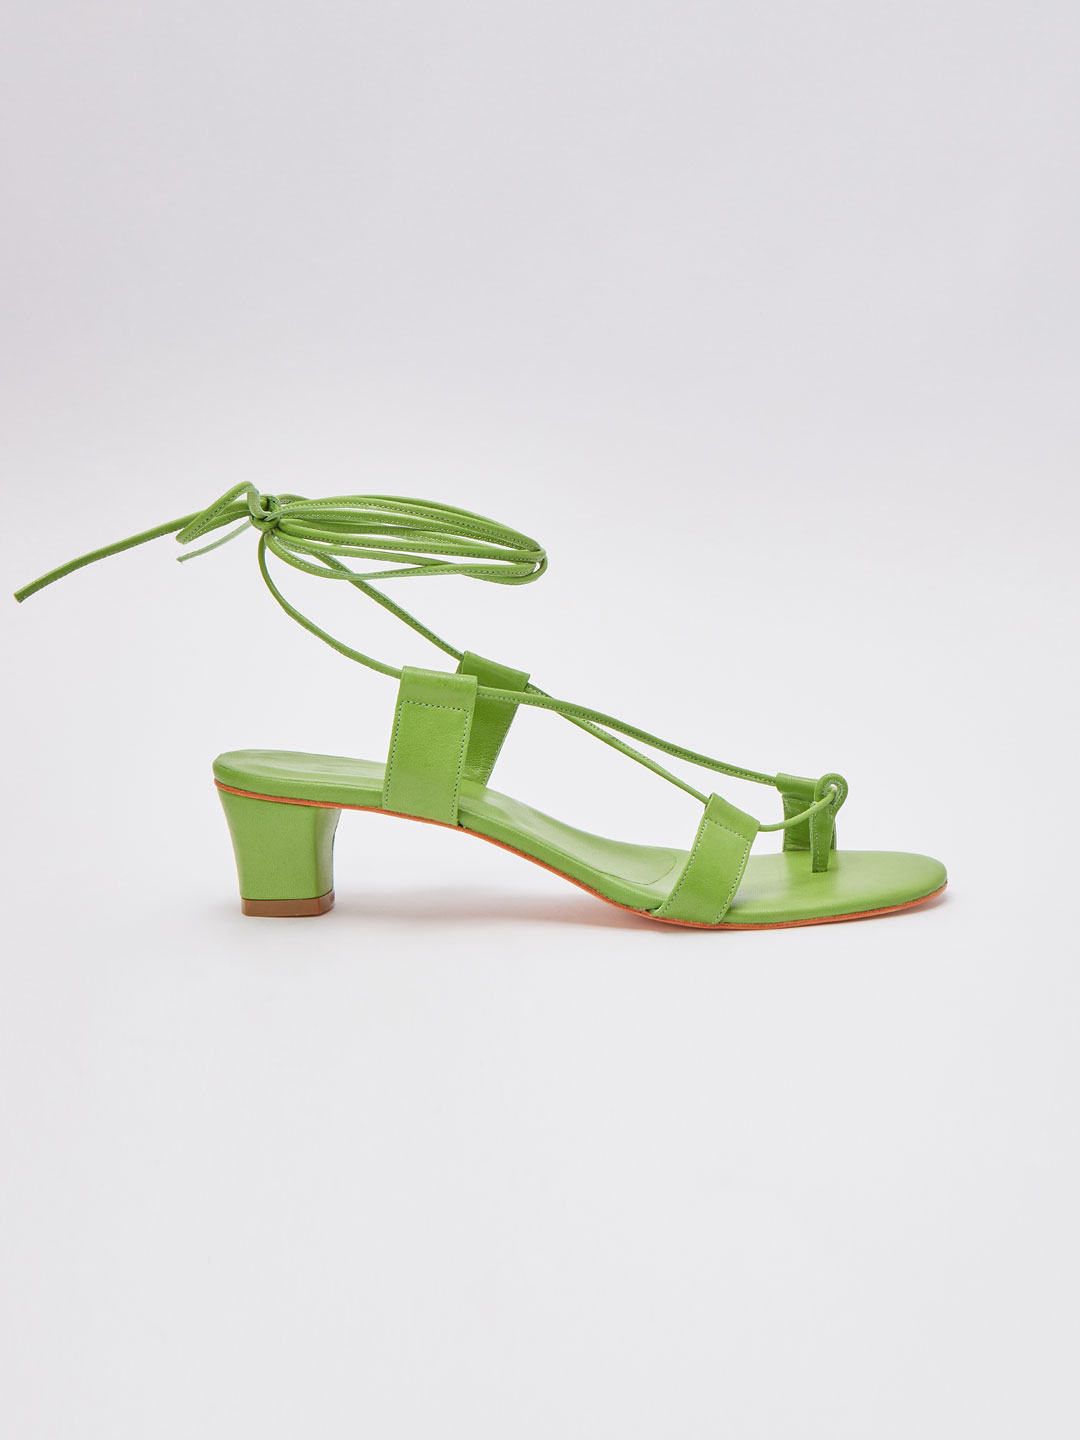 Pavone Sandals - Green